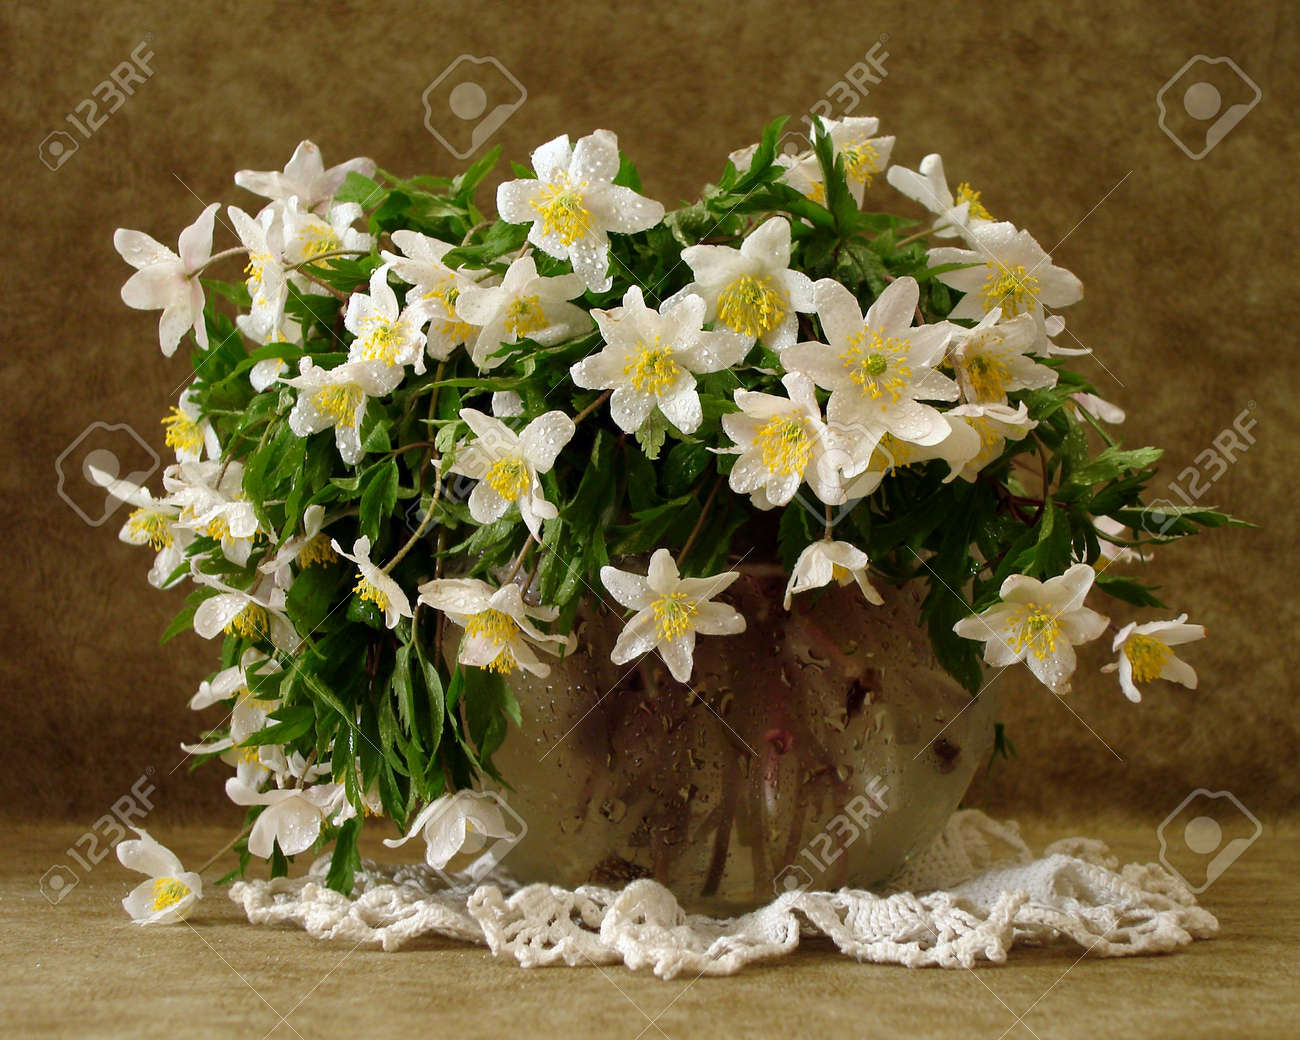 white flowers in vase over brown background Stock Photo - 2110010